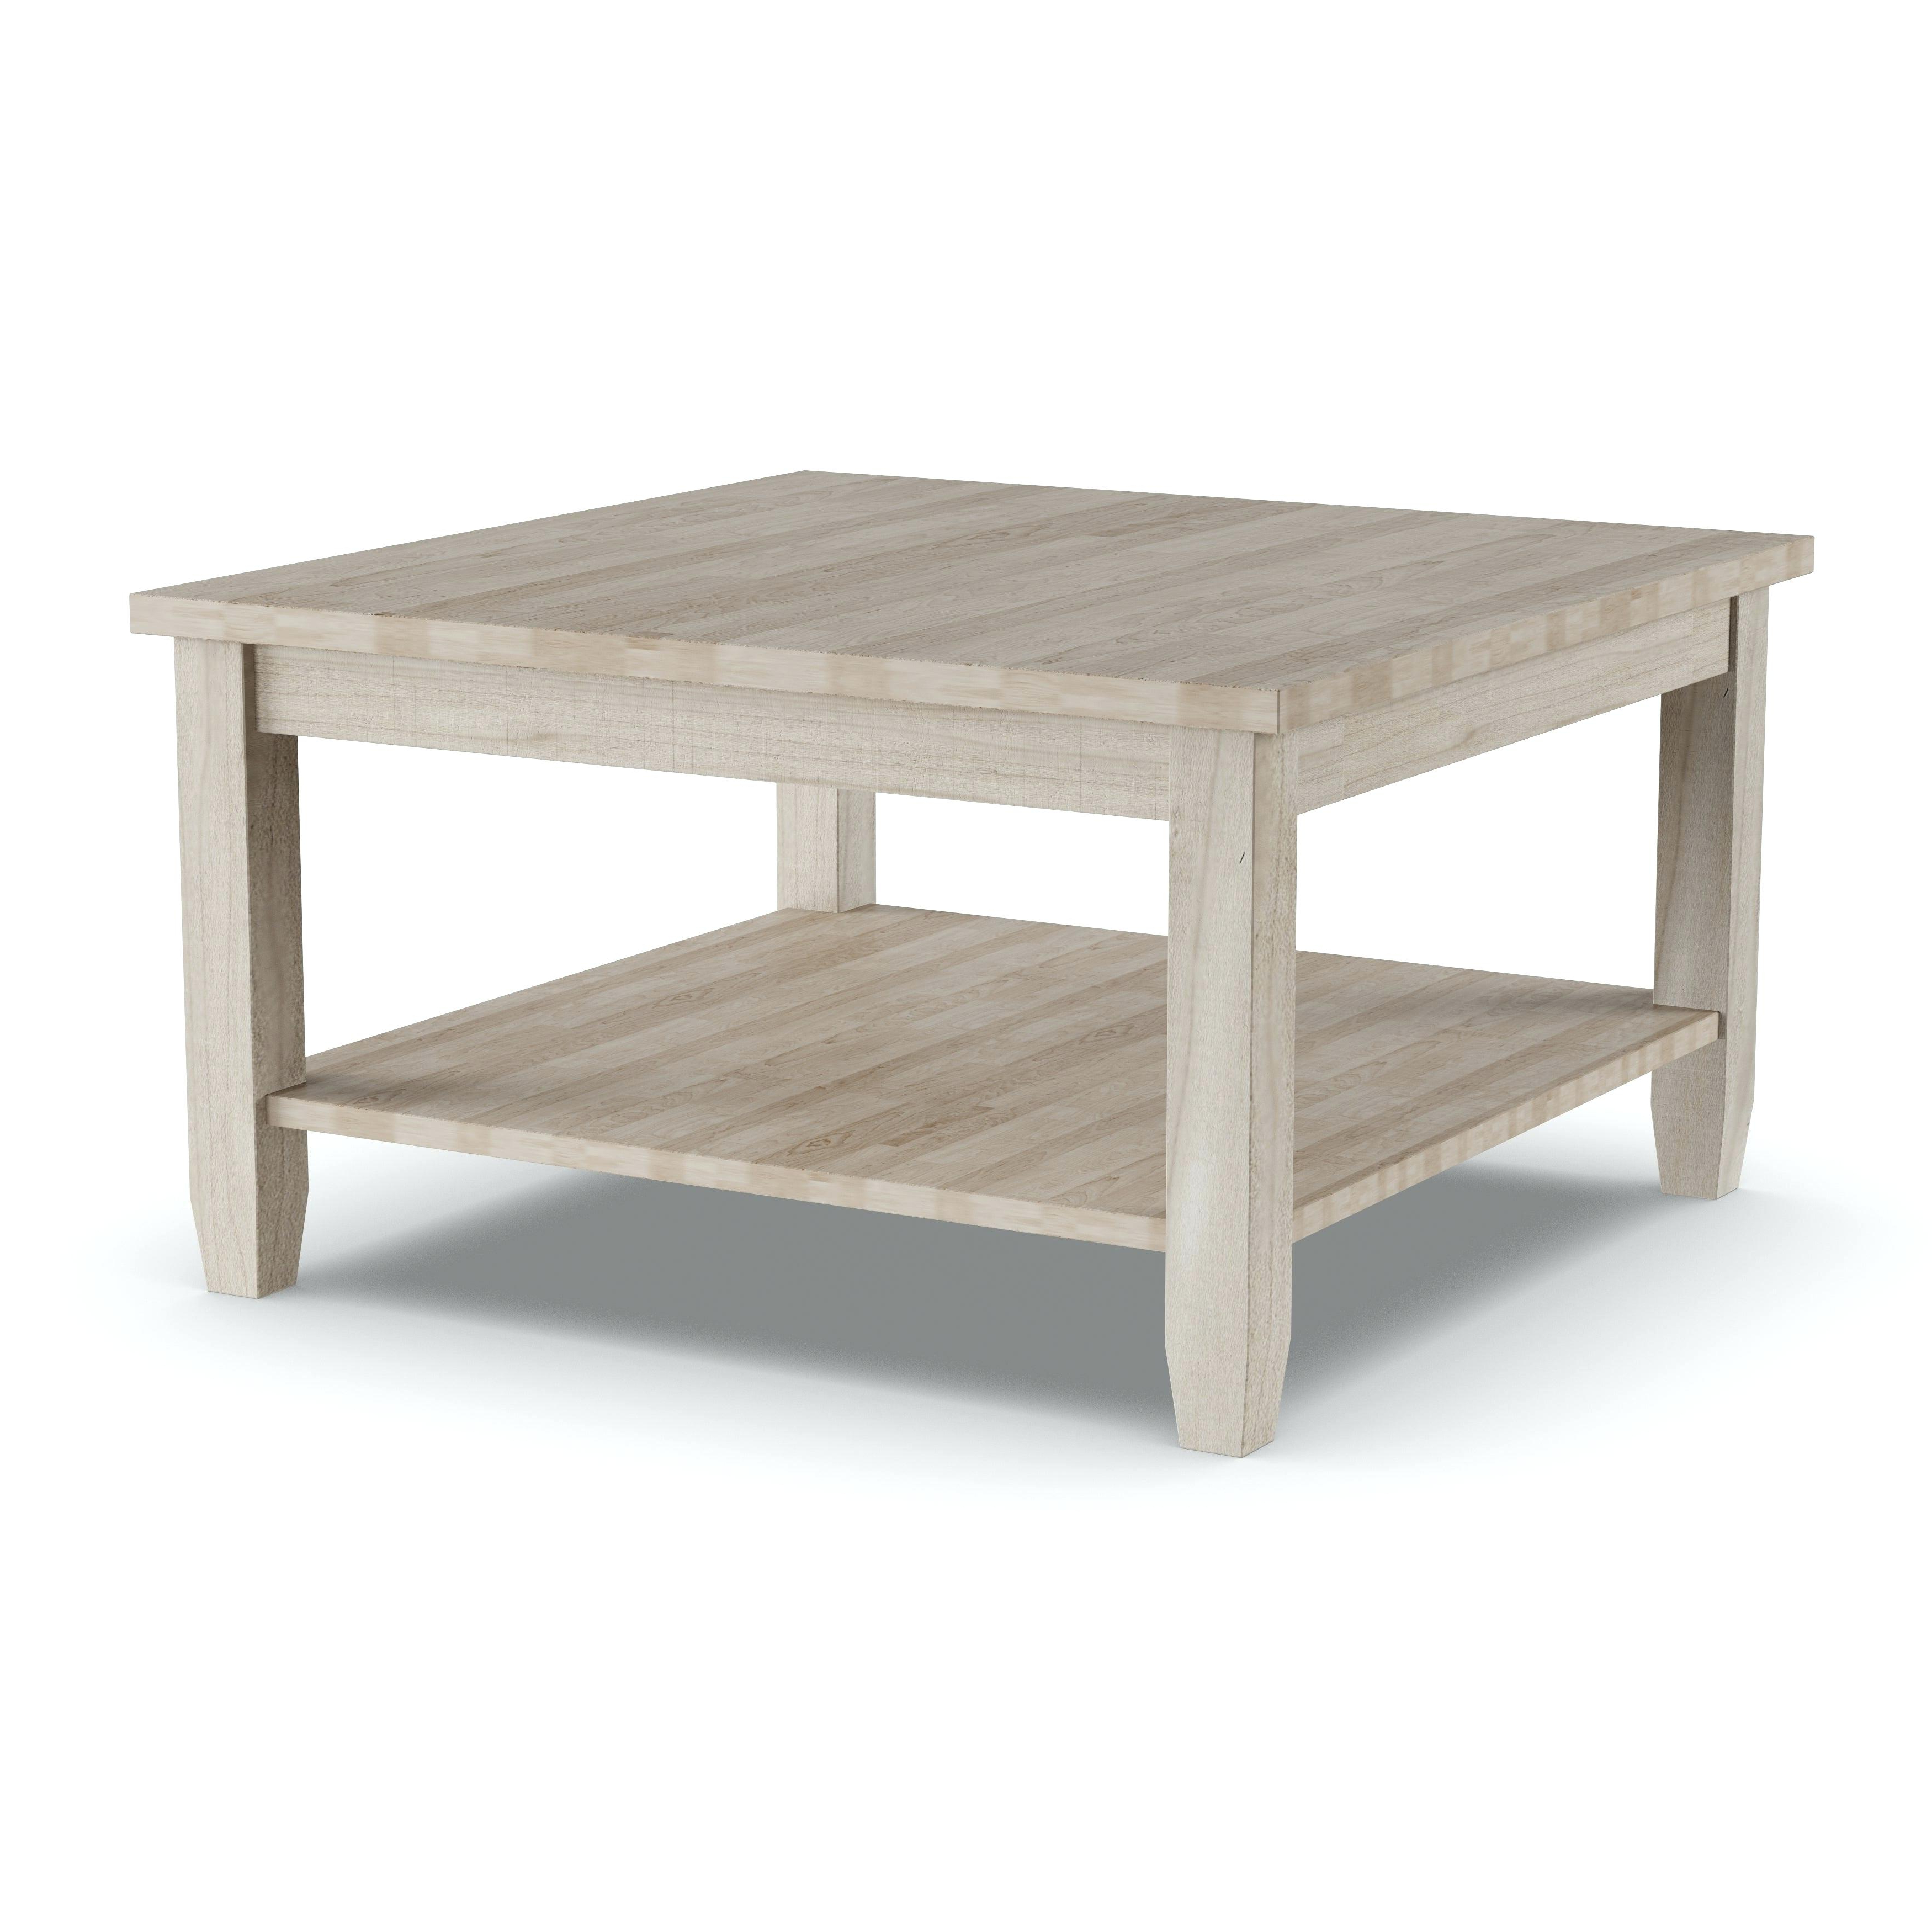 Square Wood Coffee Tables – Longmenexpress (View 19 of 20)